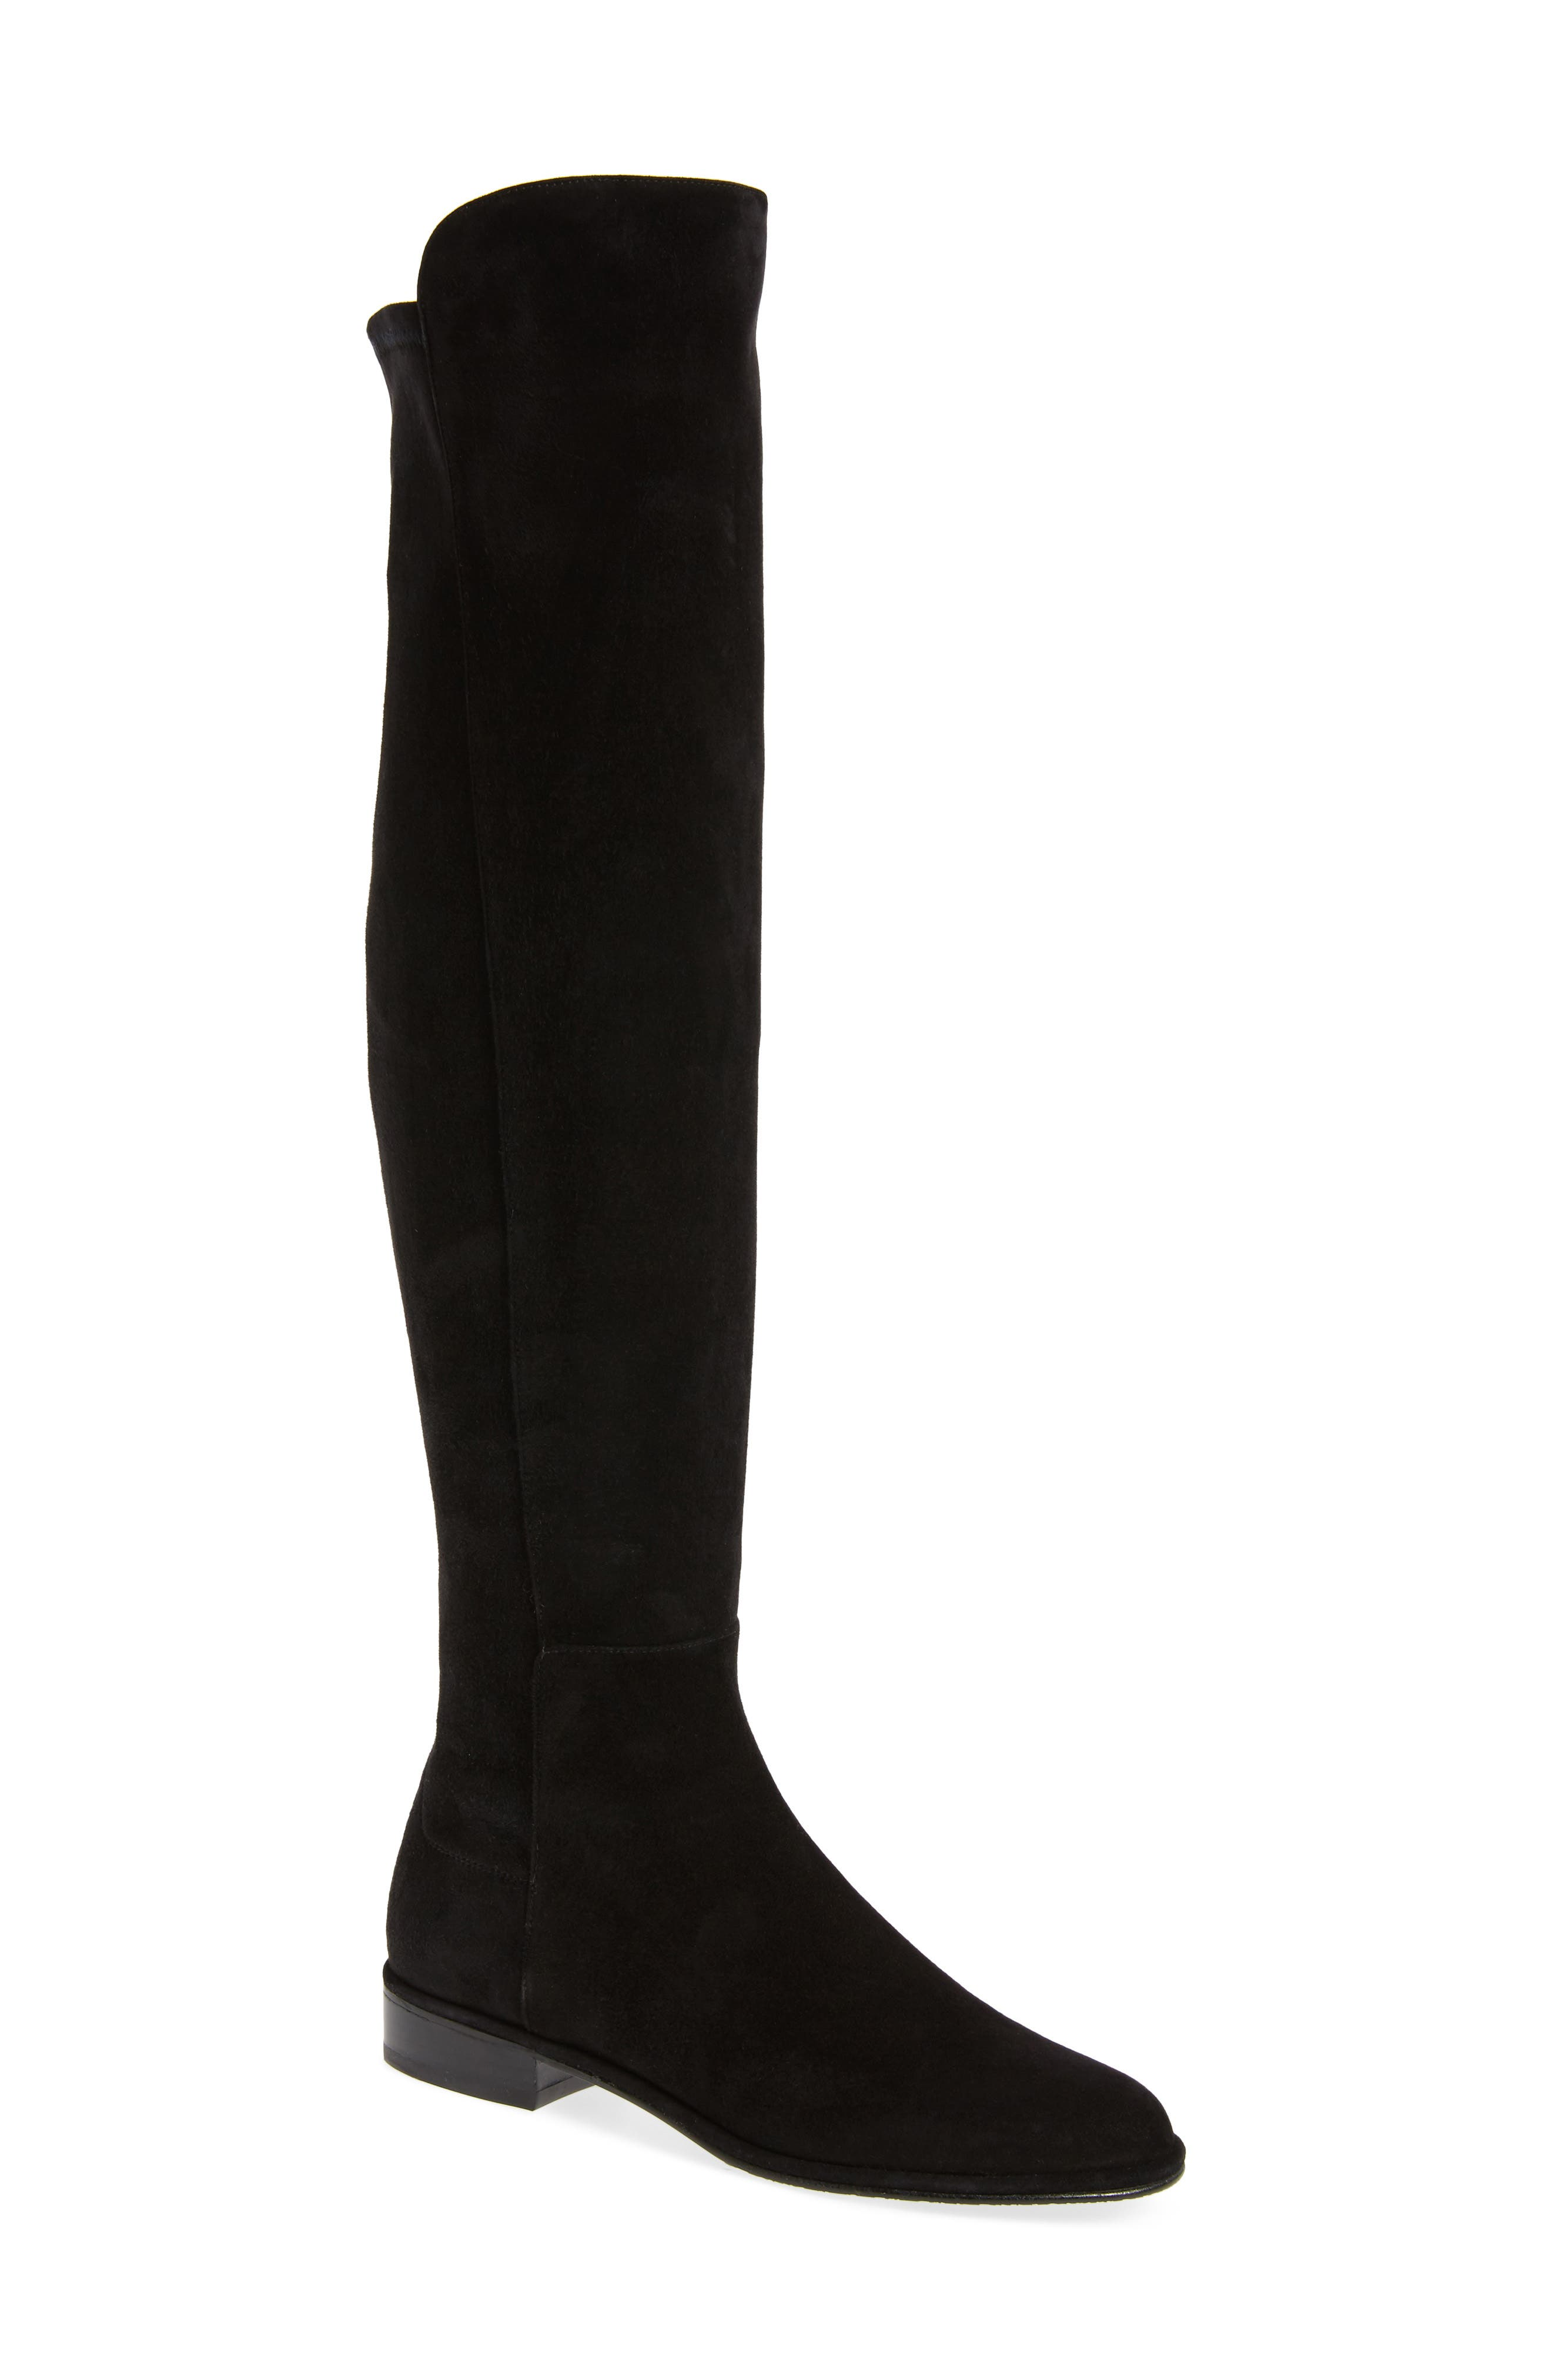 Allgood Over the Knee Boot,                             Main thumbnail 1, color,                             001